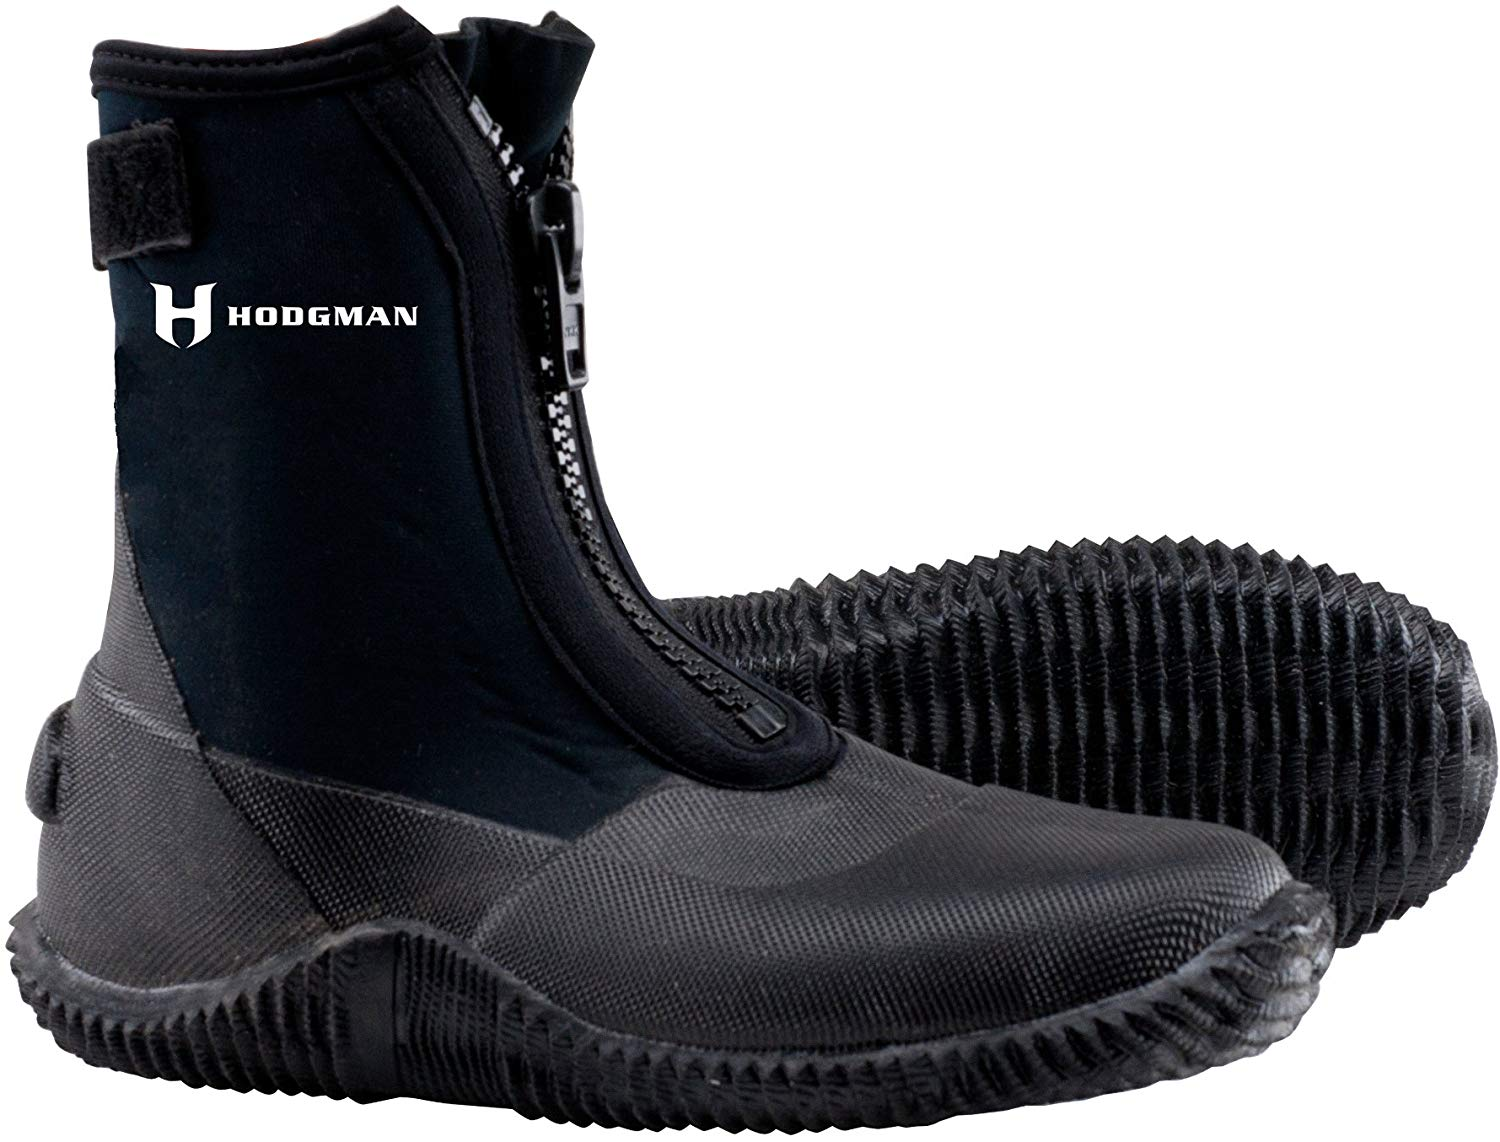 Hodgman boots for fishing